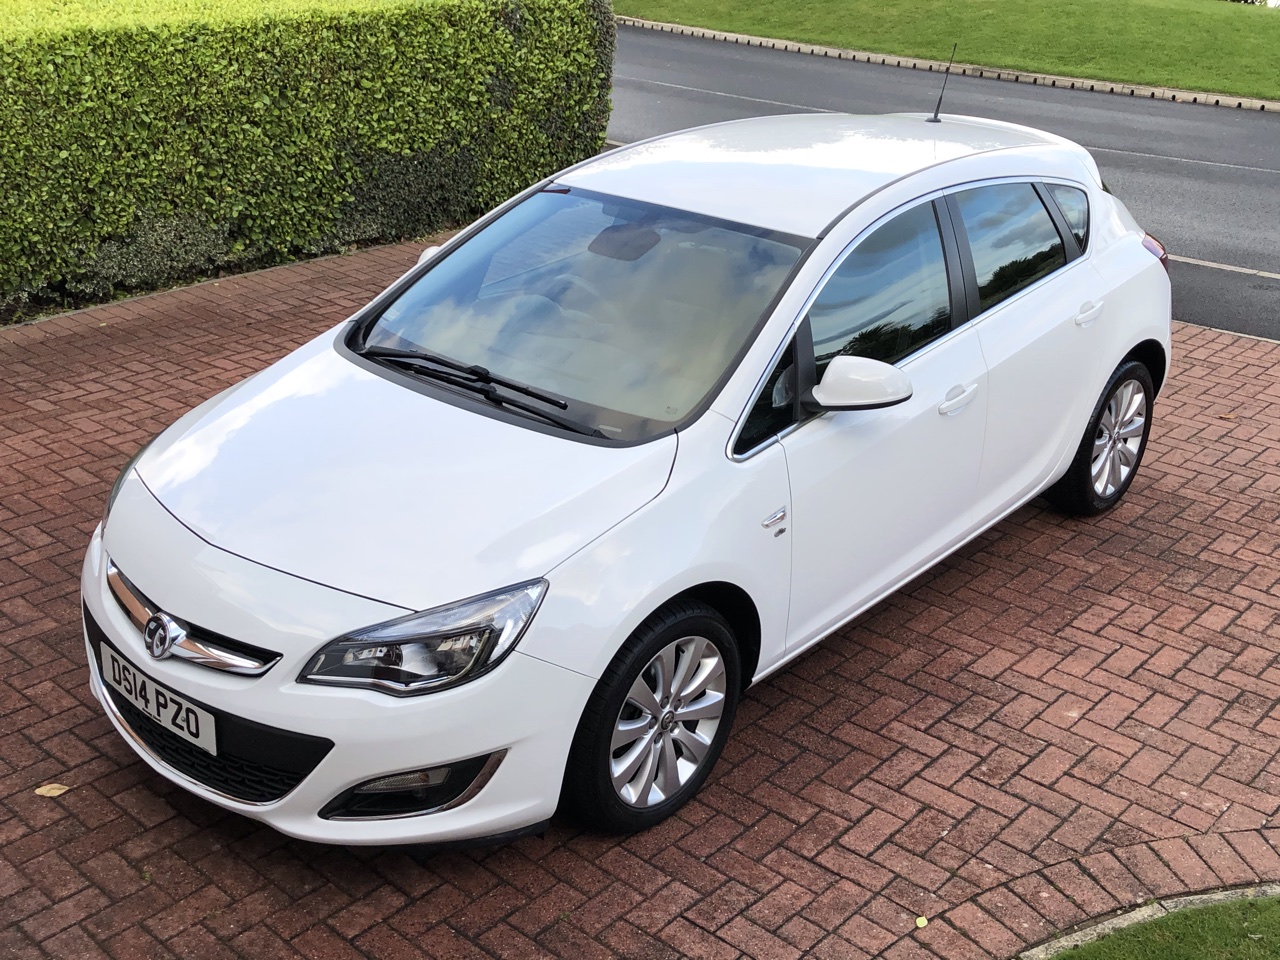 2014 14 VAUXHALL ASTRA 1.6i 16V ELITE 5 DOOR MANUAL